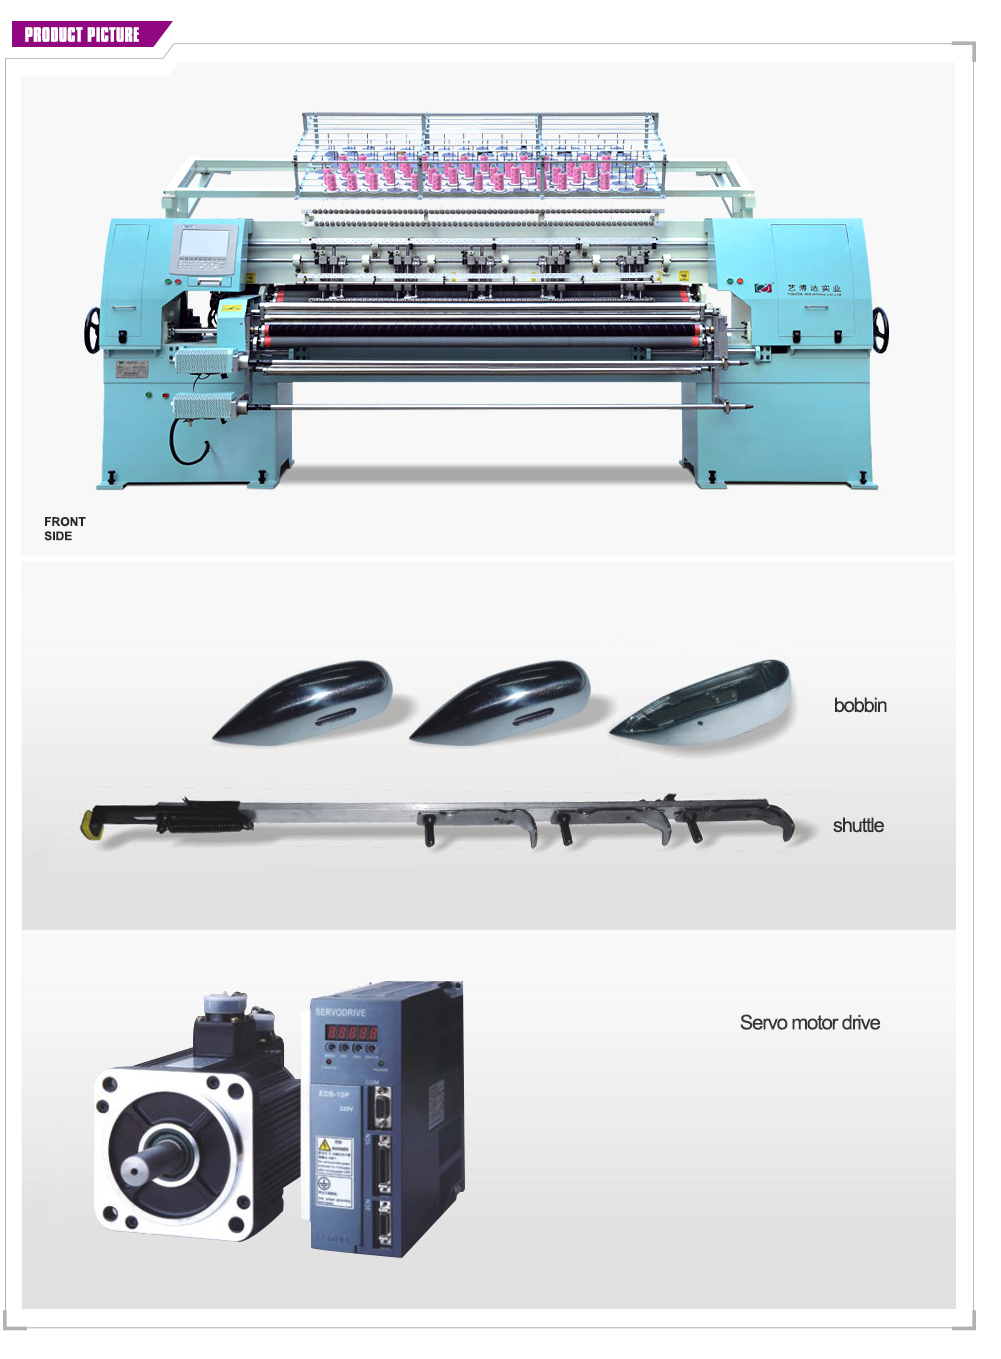 YBD 643 High Quality Multi-needle automatic quilting machine Automatic disconnection stop function